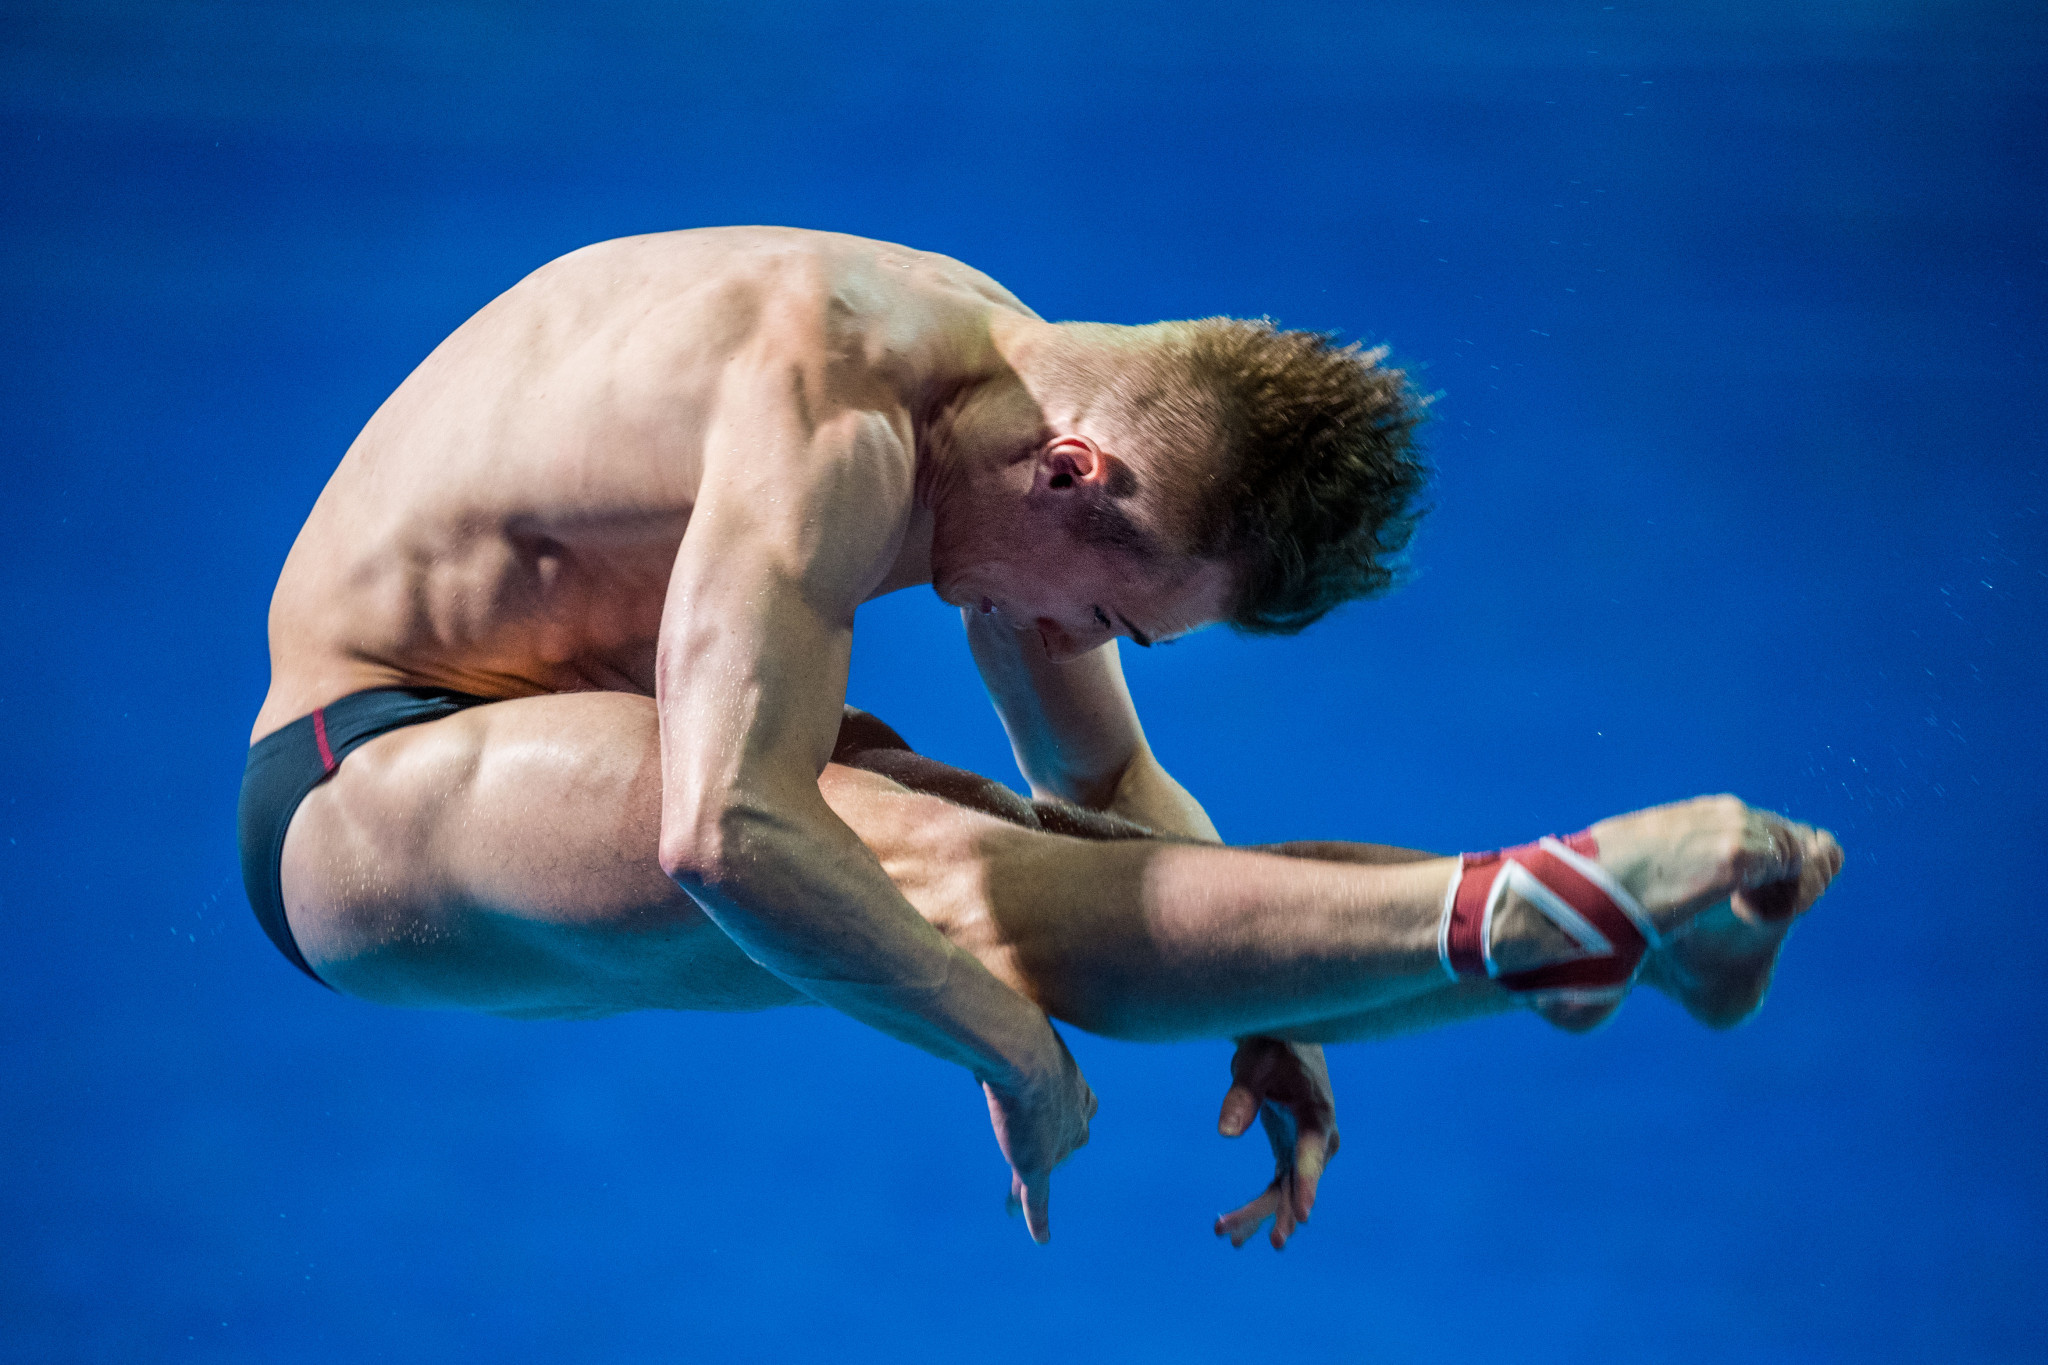 Laugher defends Commonwealth Games title on opening day of diving at Gold Coast 2018